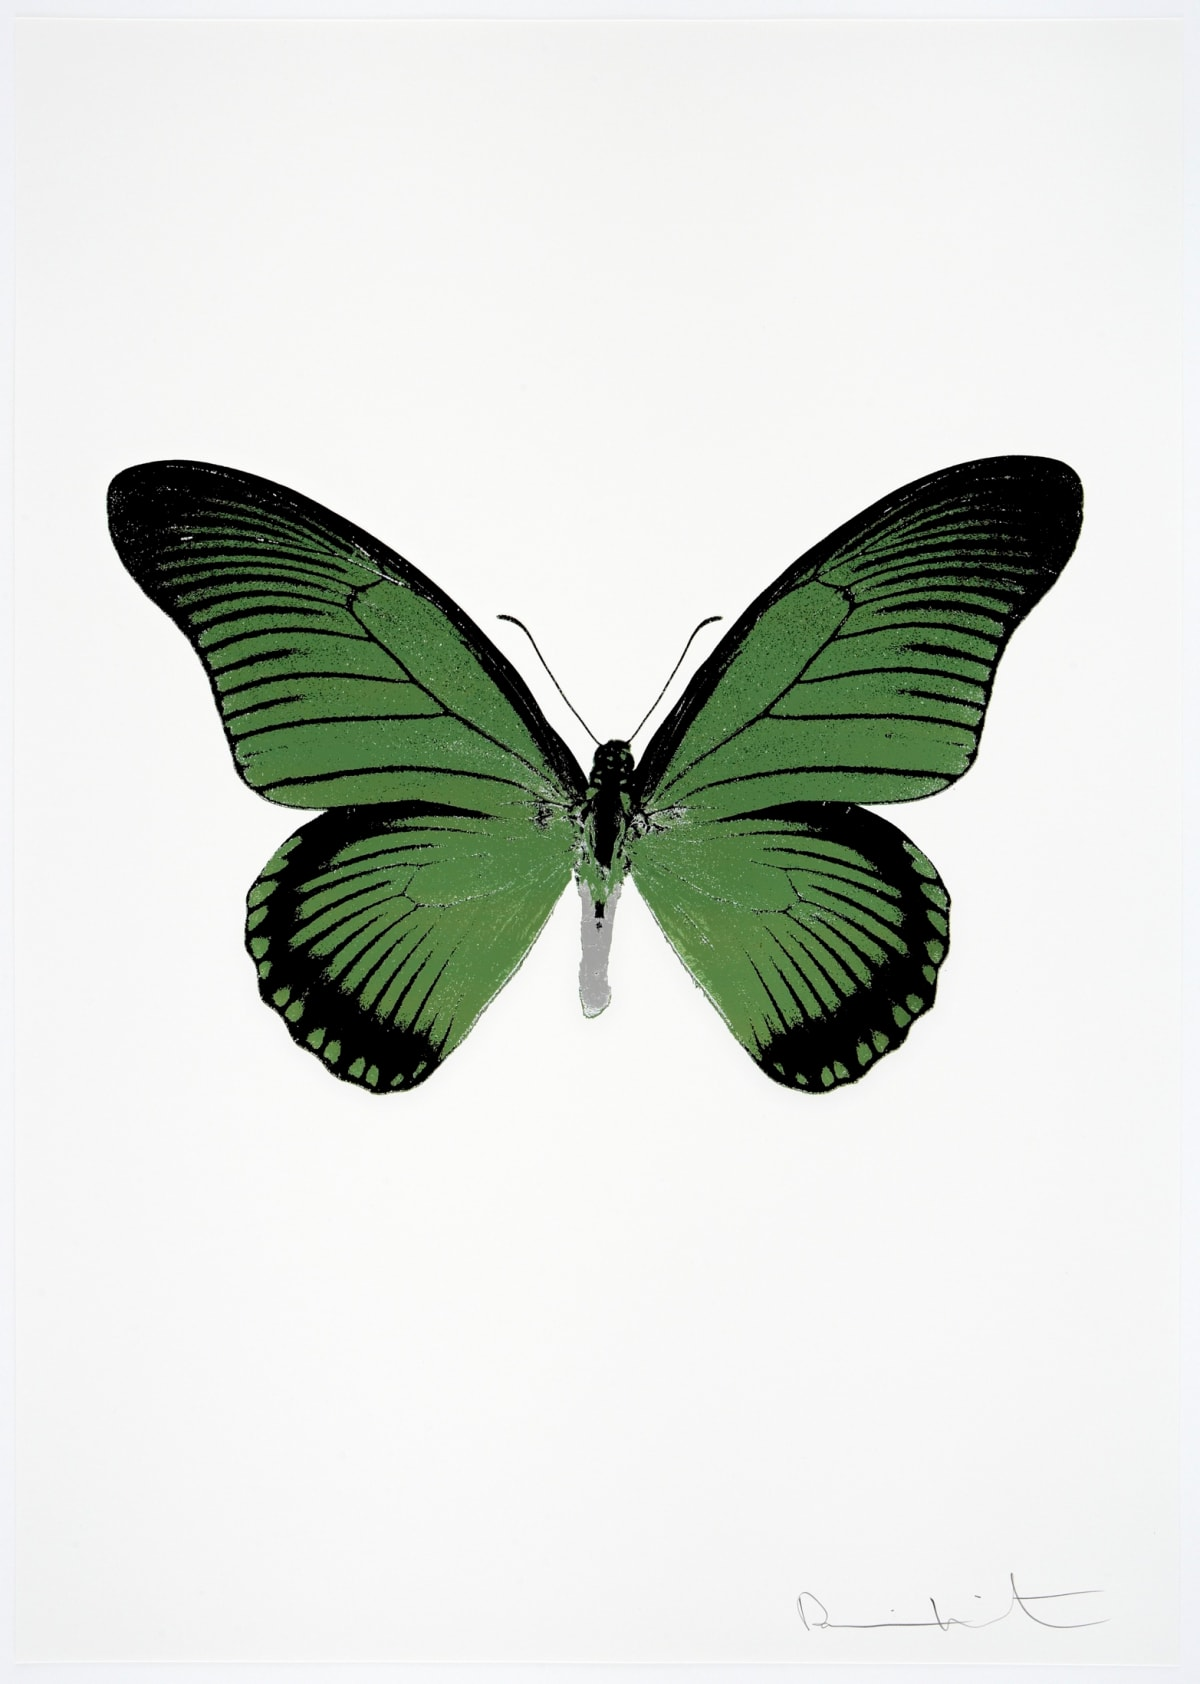 Damien Hirst The Souls IV - Leaf Green/Raven Black/Silver Gloss, 2010 3 colour foil block on 300gsm Arches 88 archival paper. Signed and numbered. Published by Paul Stolper and Other Criteria 72 x 51cm OC7980 / 1418-3 Edition of 15